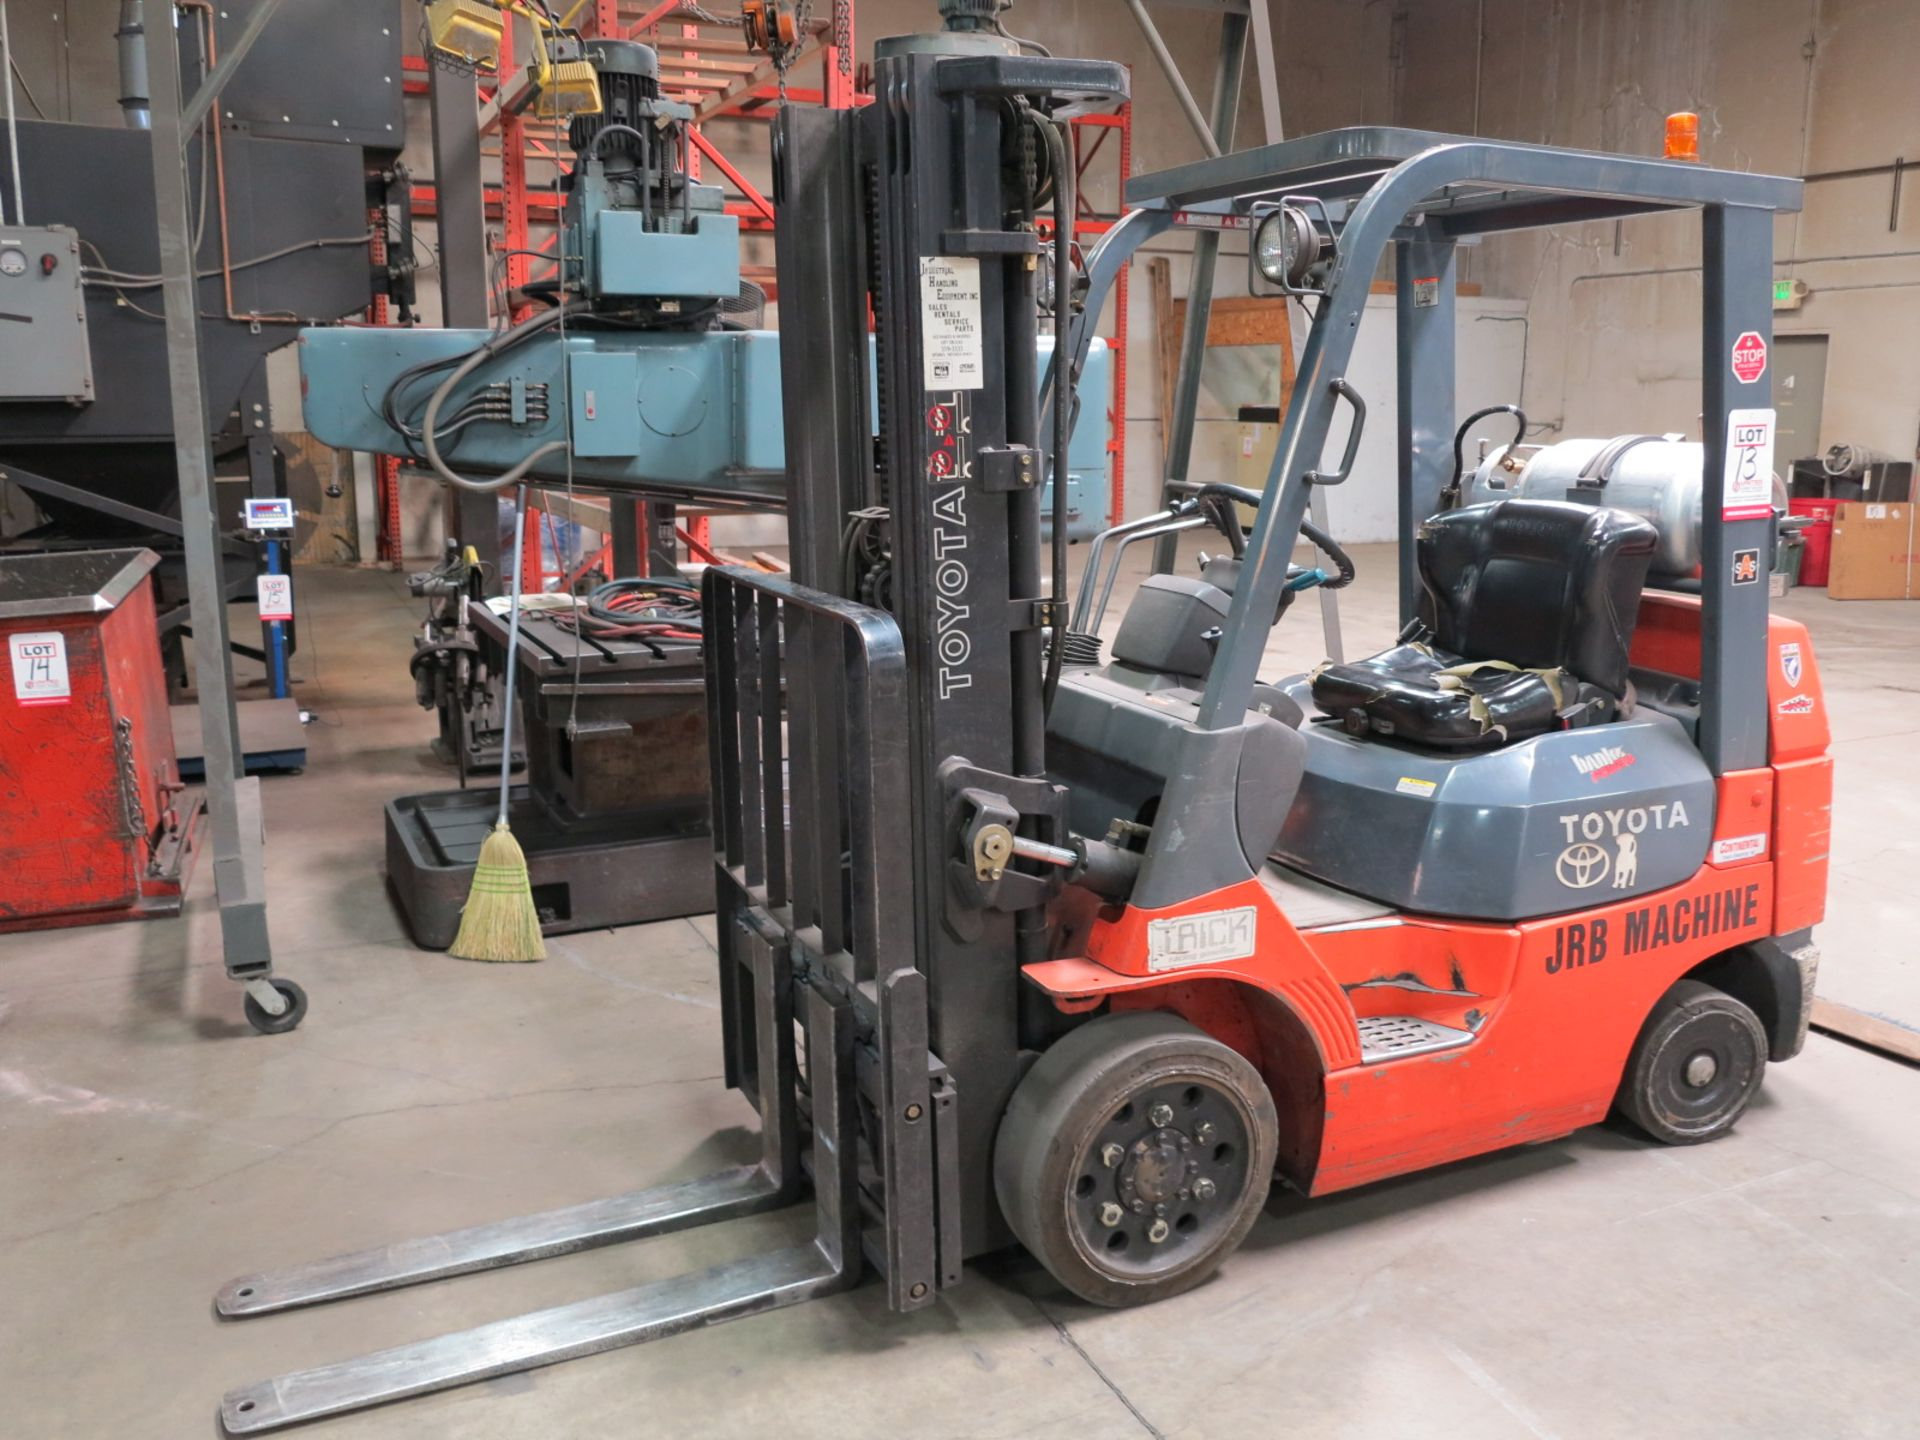 Lot 13 - TOYOTA MODEL 7FGCU LPG FORKLIFT, 4,500 LB CAPACITY, SOLID TIRES, 3-STAGE MAST, SIDE SHIFT, 4,555